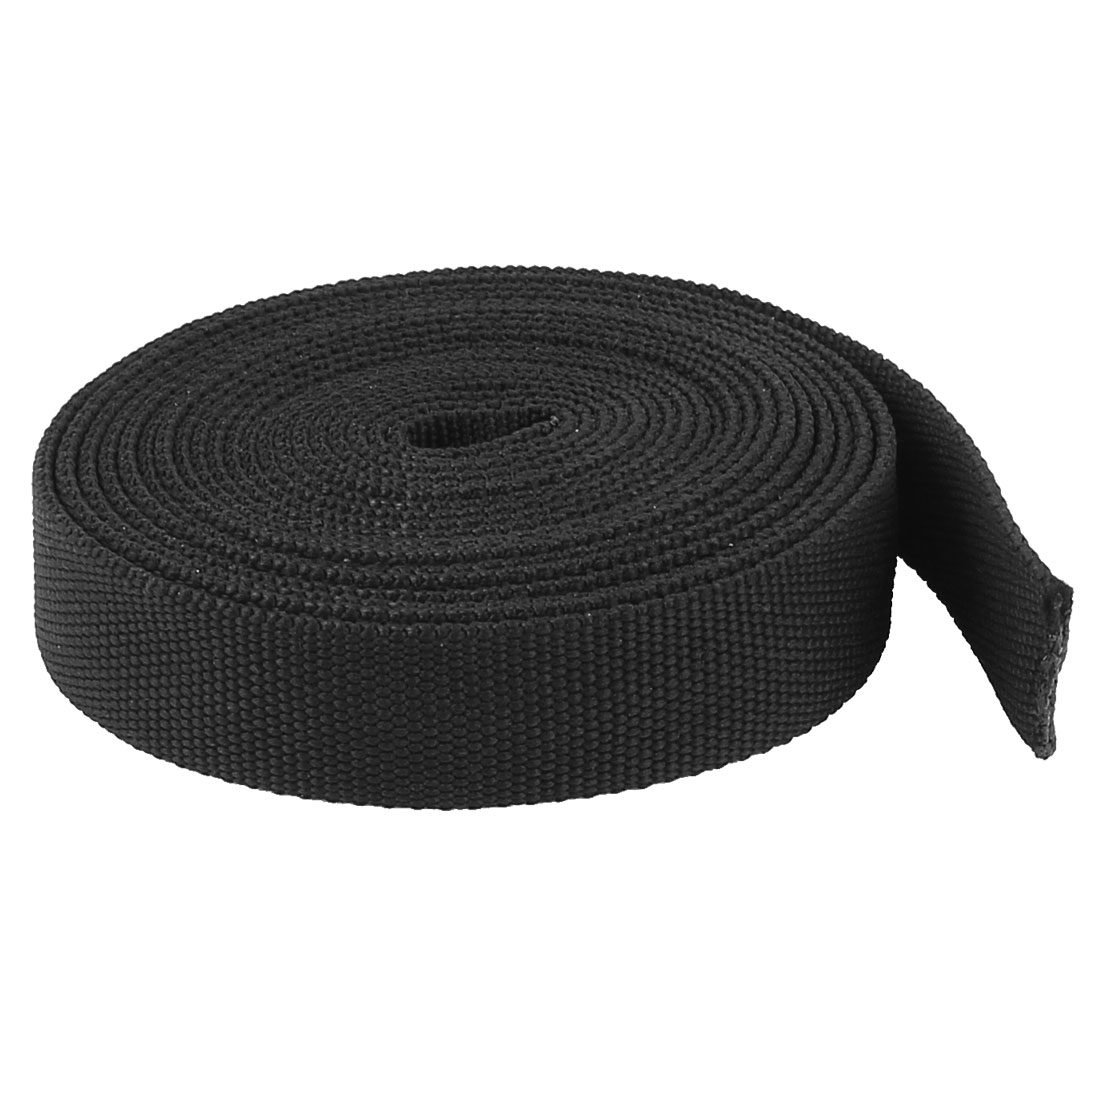 12mm Diameter PET Cable Wire Tube Flexible Protecting Sleeving 3 Meter